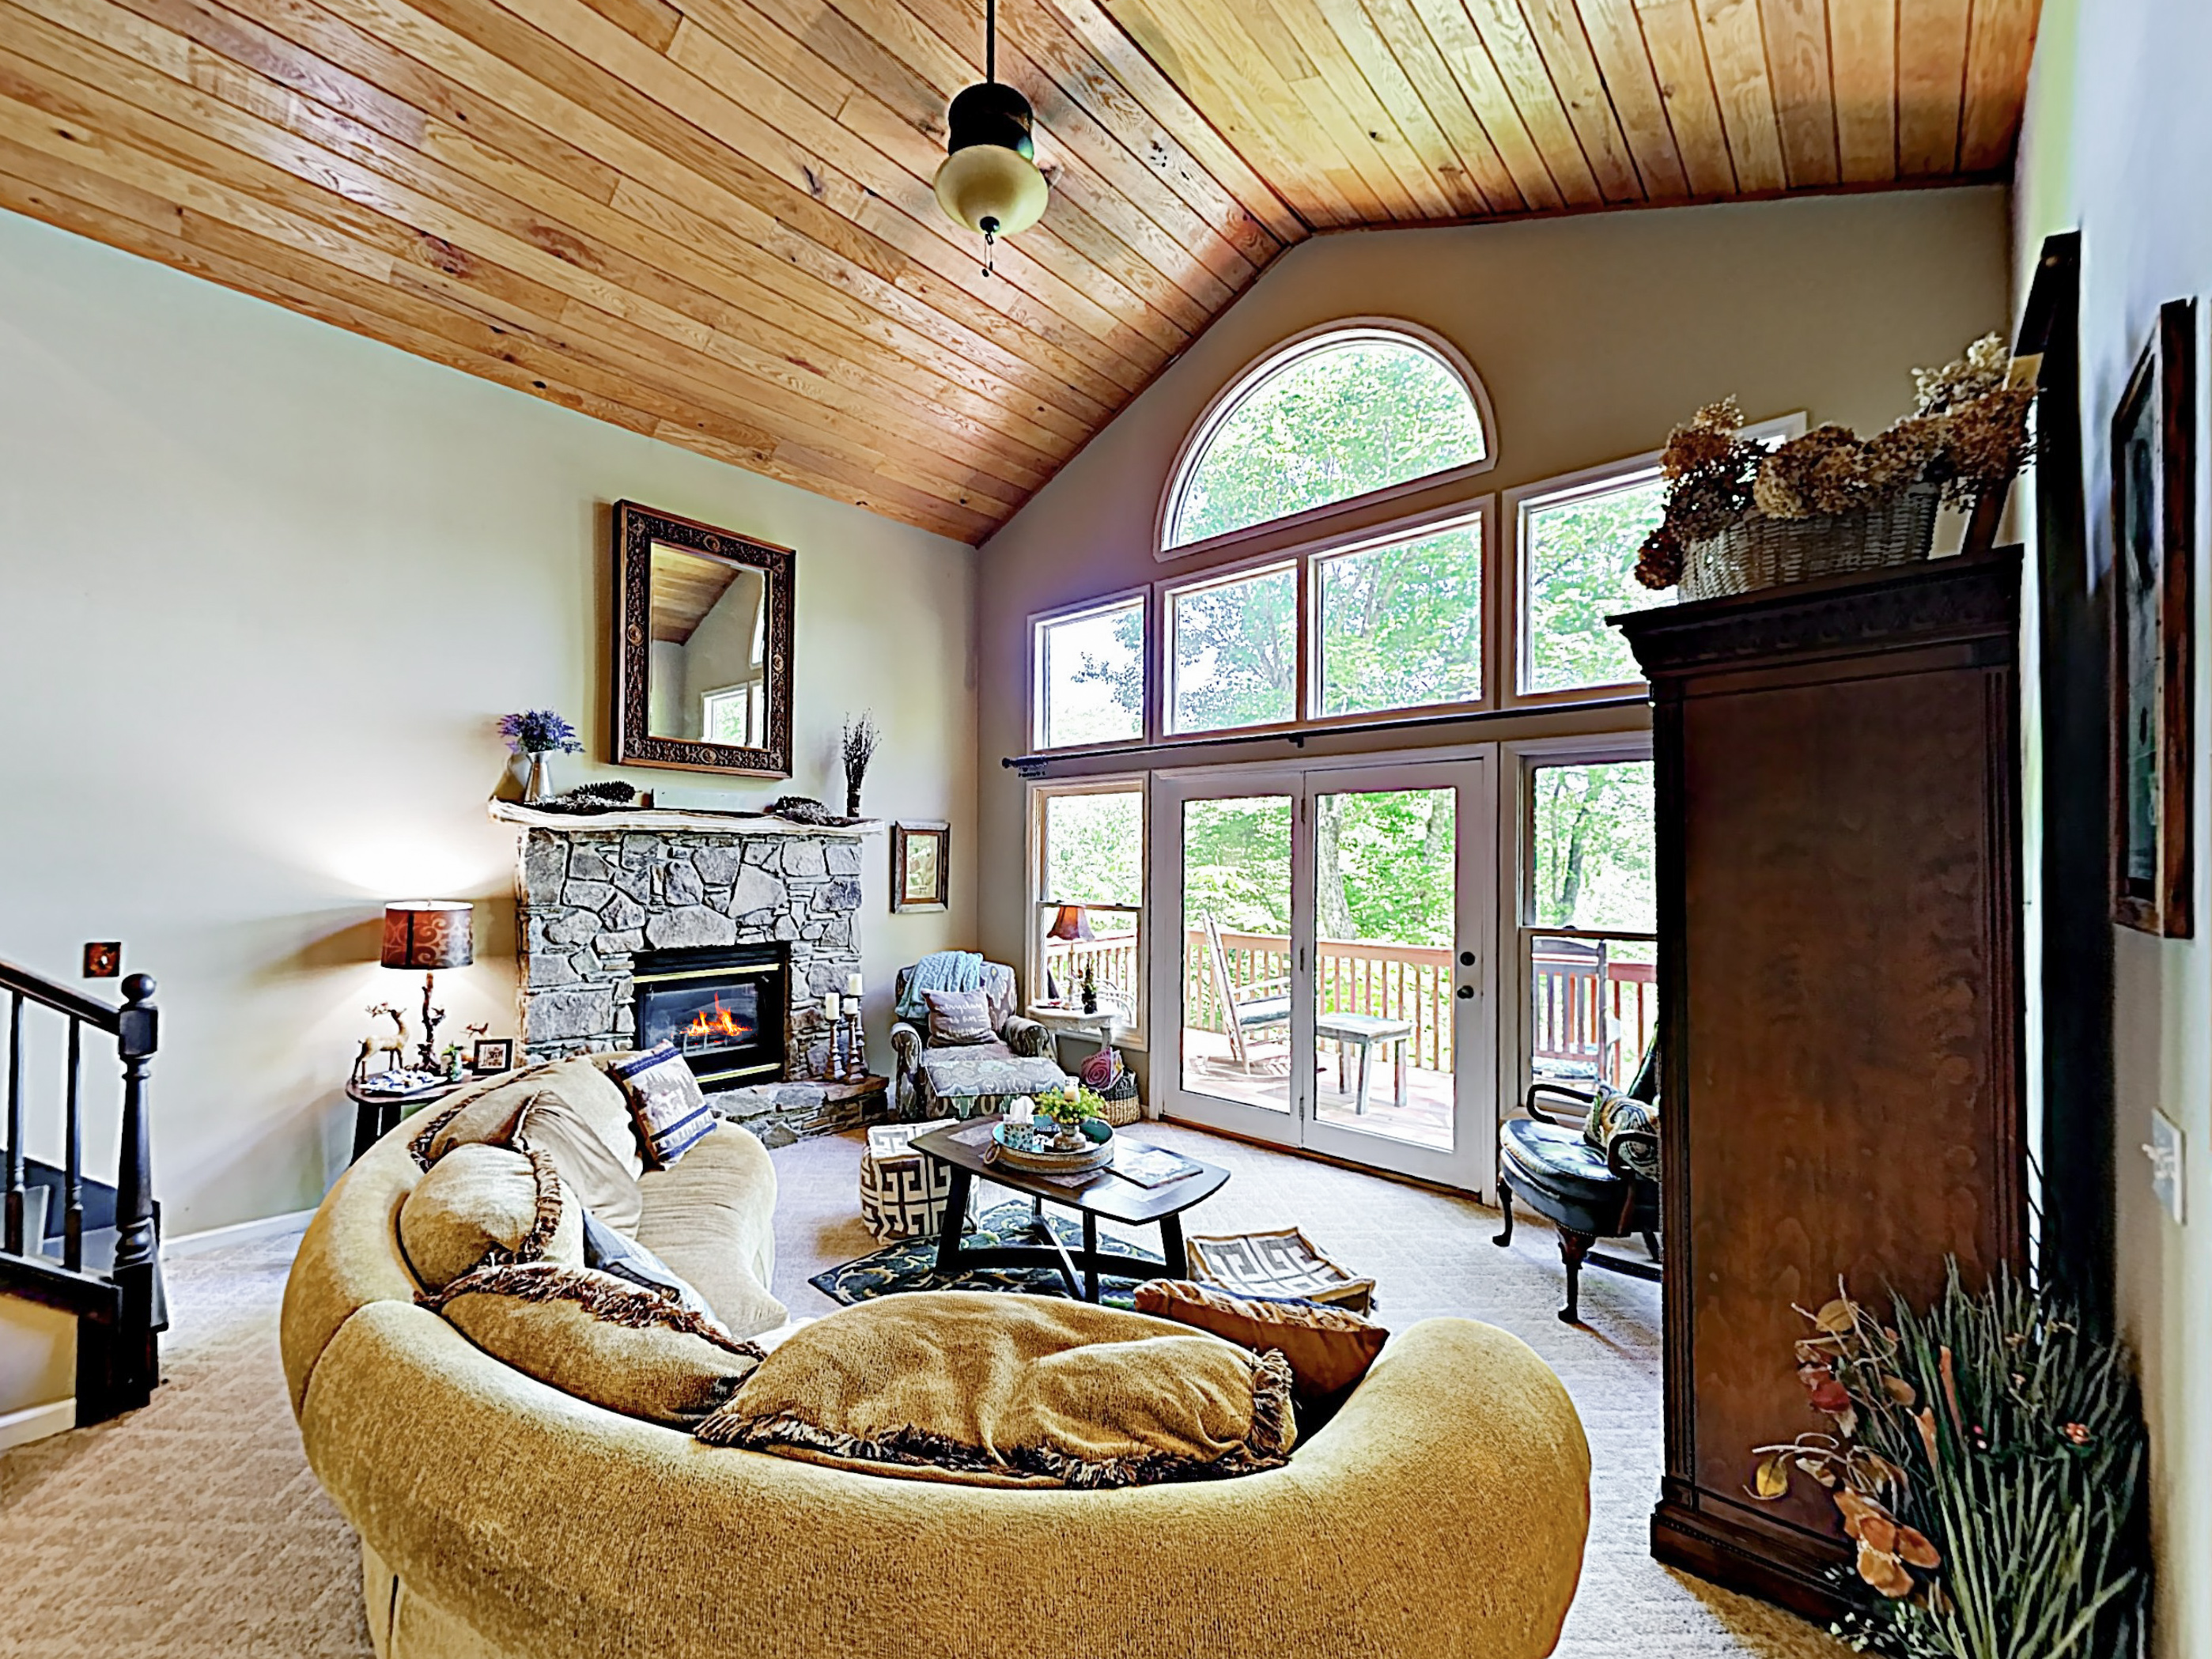 Pisgah Forest NC Vacation Rental Welcome! This mountain